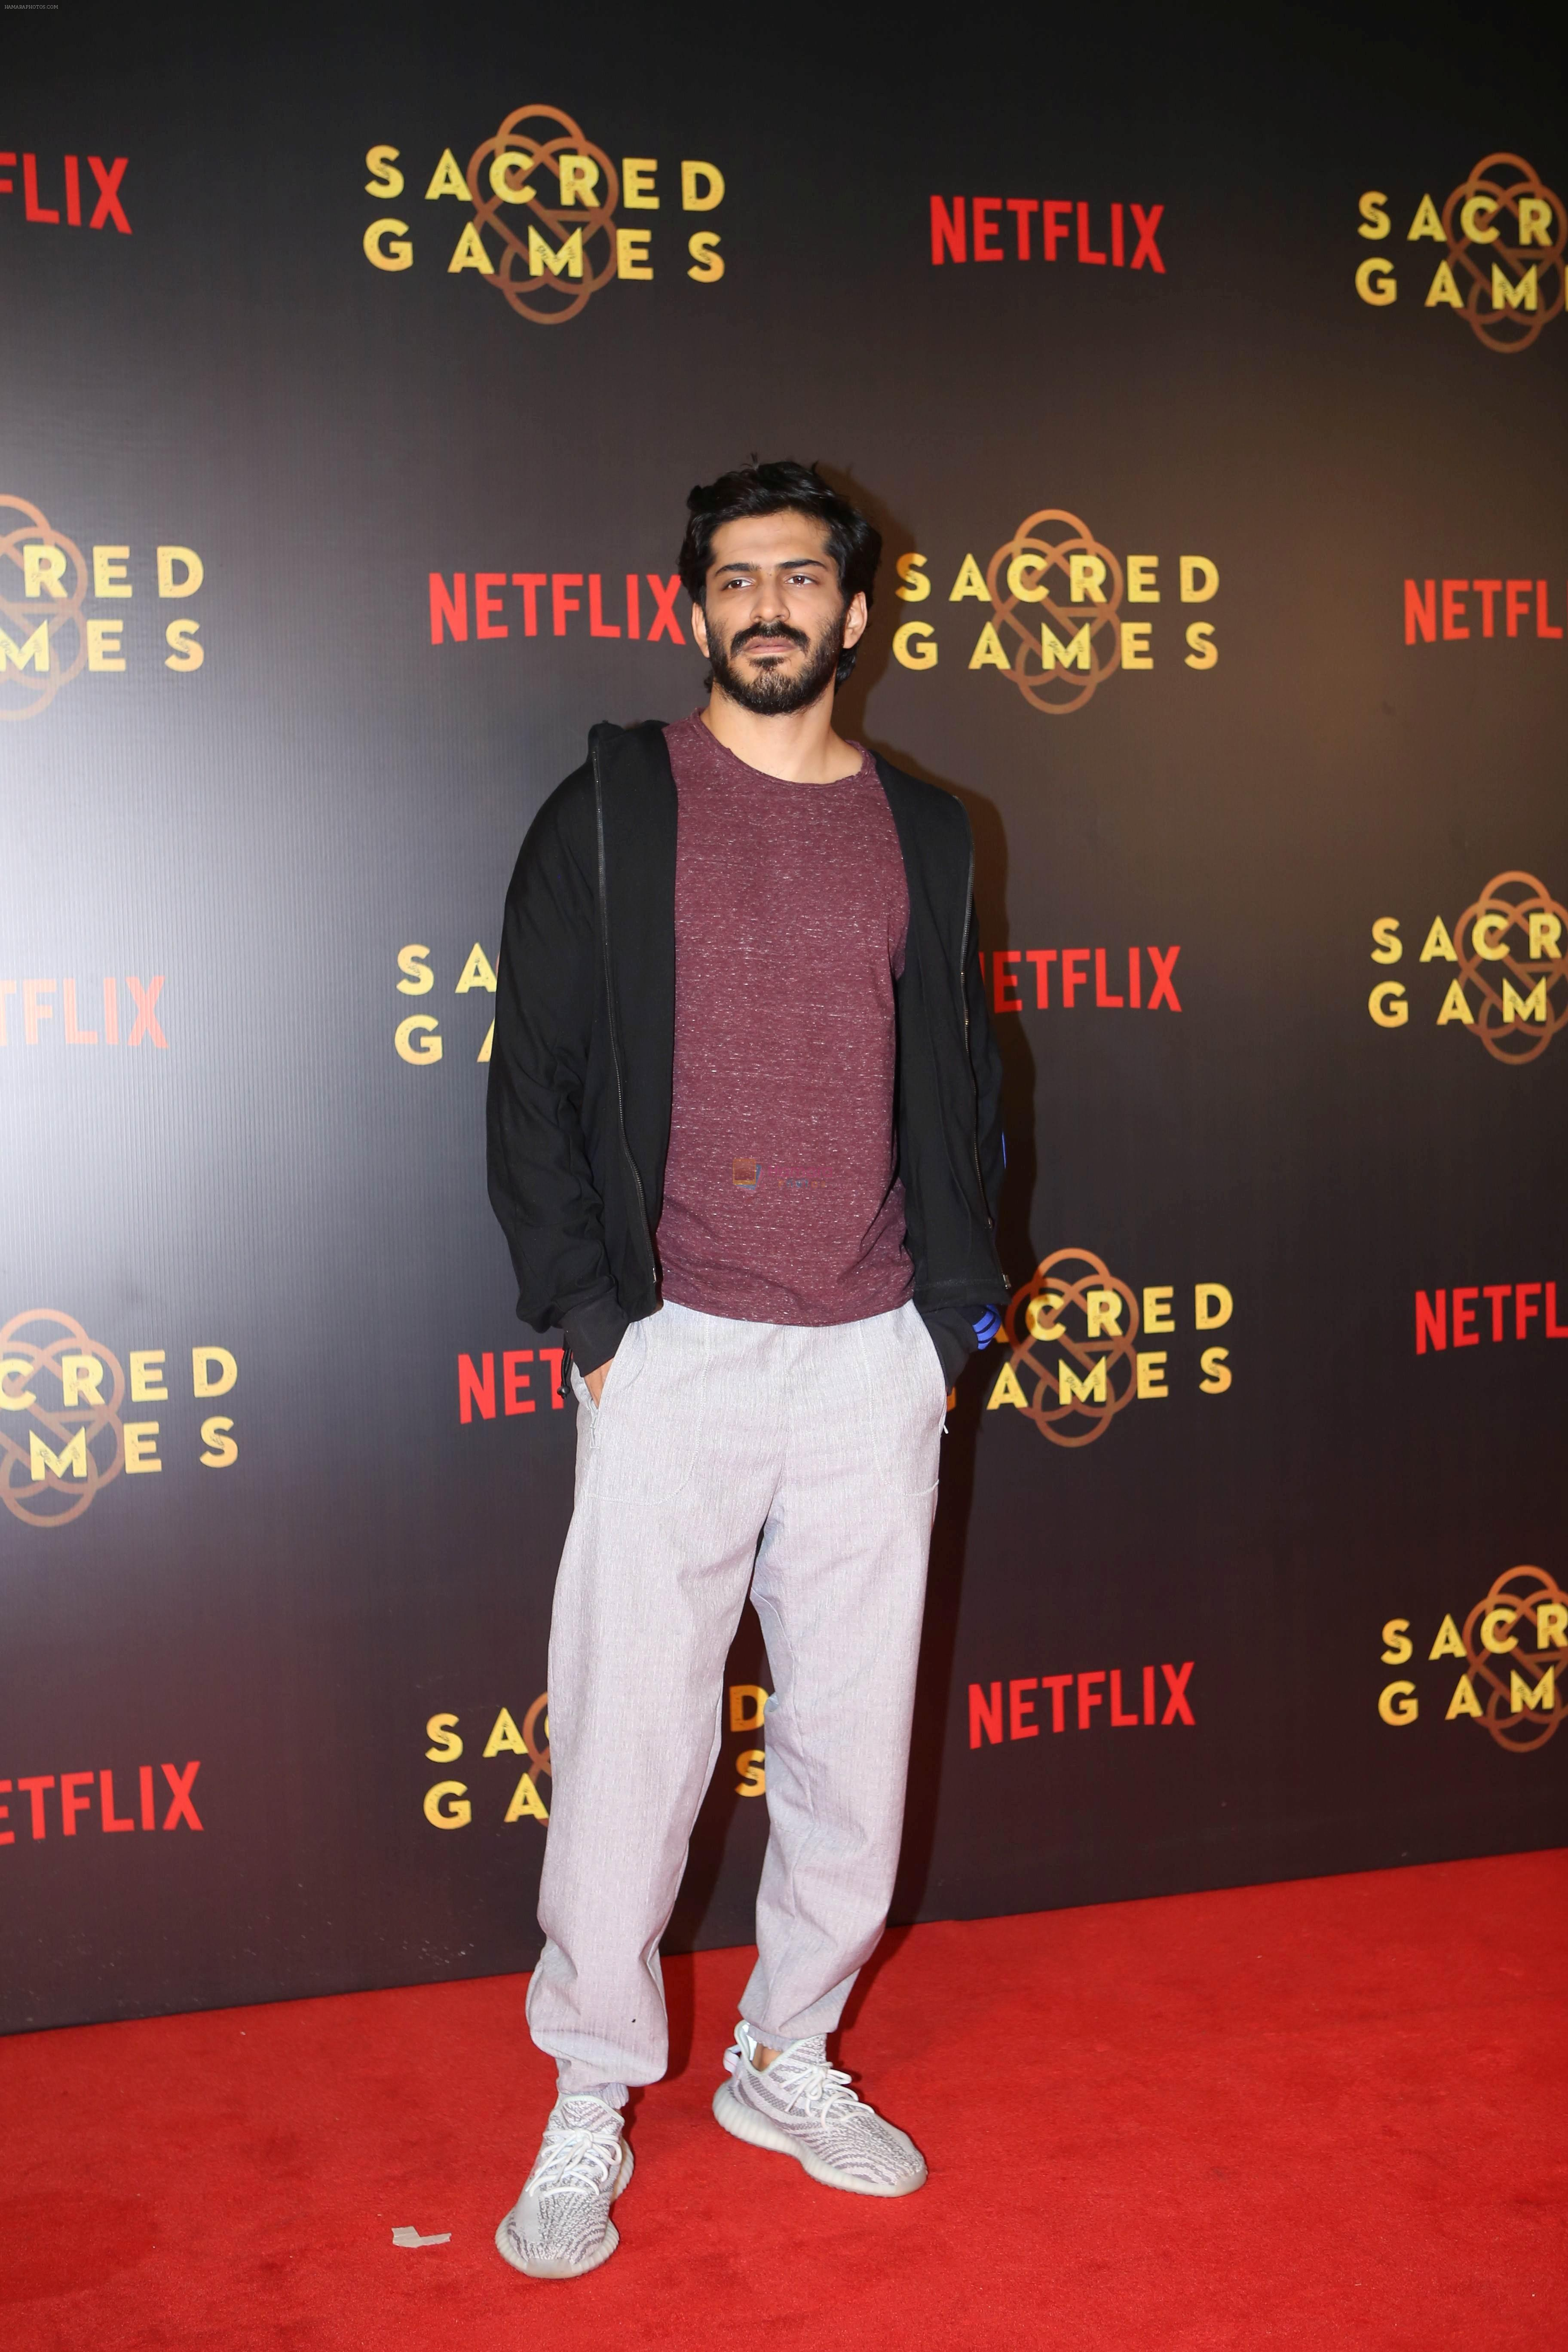 Harshavardhan Kapoor at the Screening of Netflix Sacred Games in pvr icon Andheri on 28th June 2018